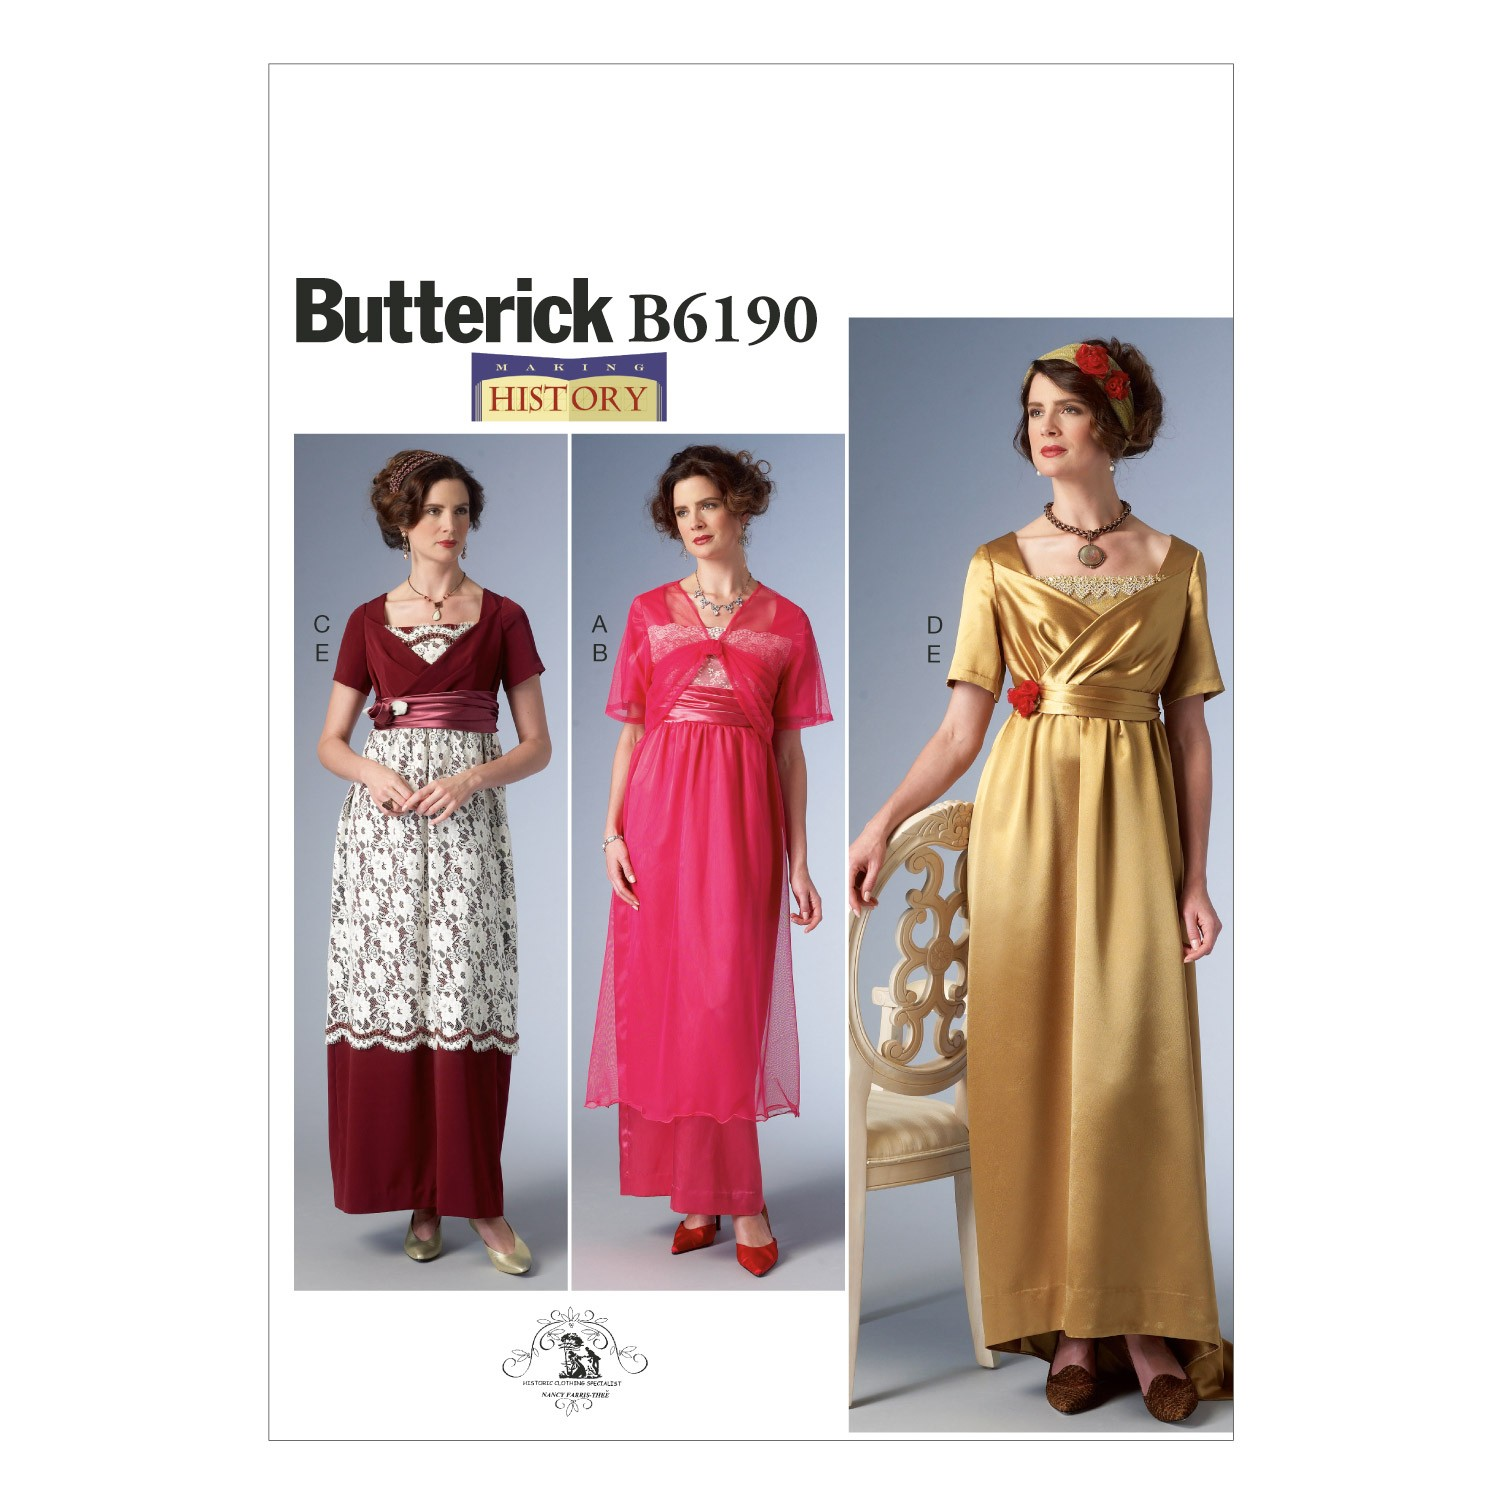 Butterick Sewing Pattern 6190 Misses' Vintage Style Costume Dress